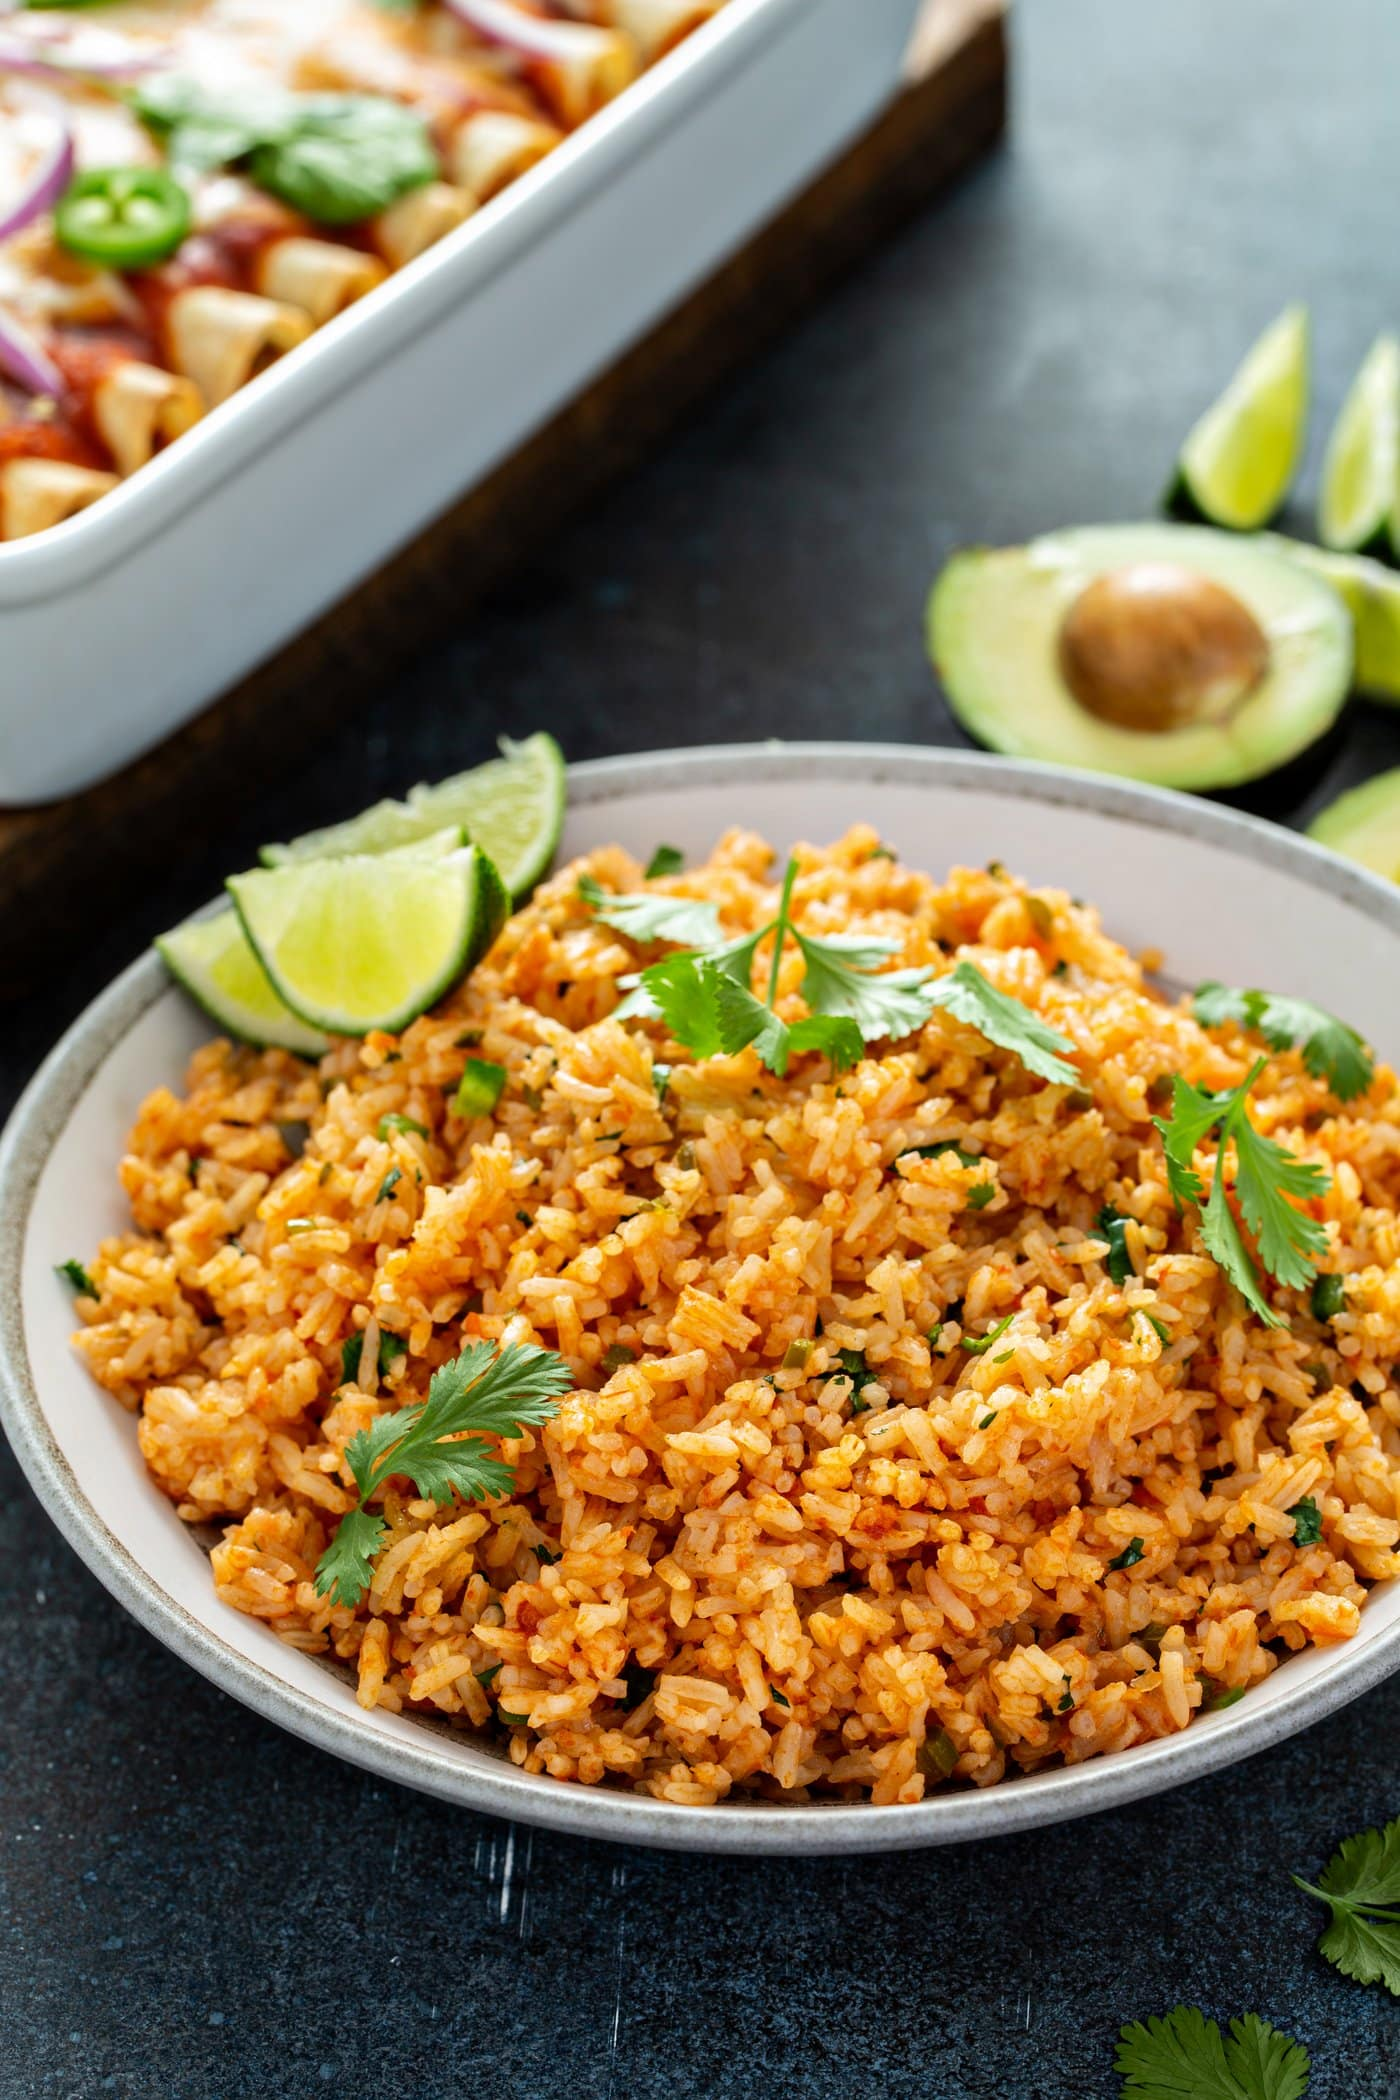 A bowl of Spanish rice. It has cilantro leaves sprinkled on top and three lime wedges on the edge. There is an avocado that has been cut in half and a baking dish of enchiladas in the background.